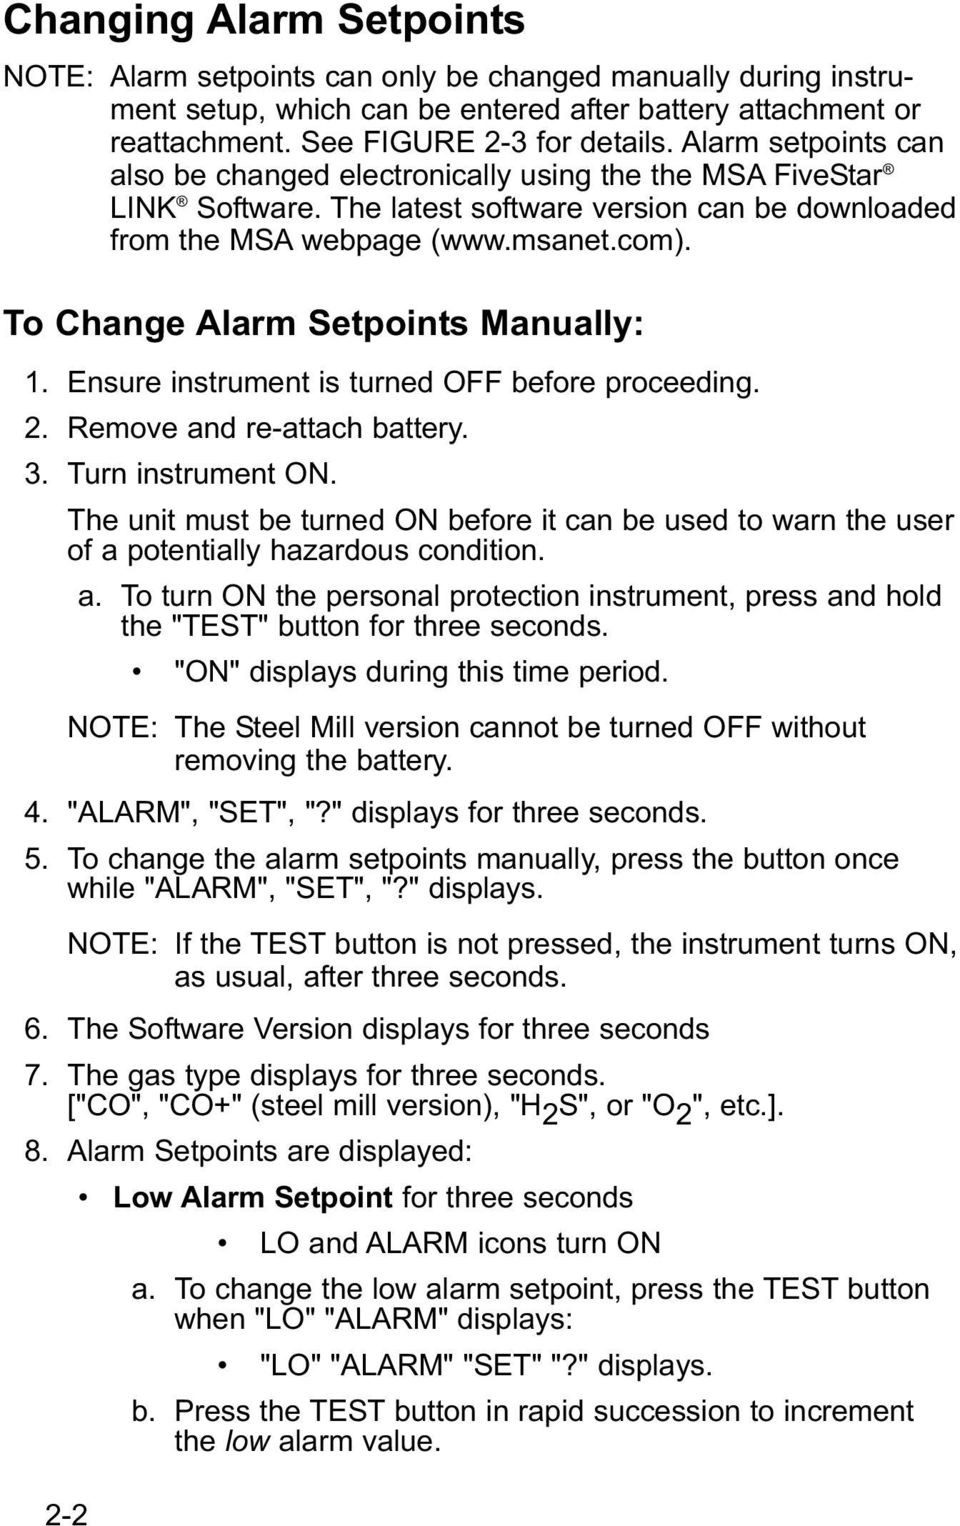 To Change Alarm Setpoints Manually: 1. Ensure instrument is turned OFF before proceeding. 2. Remove and re-attach battery. 3. Turn instrument ON.